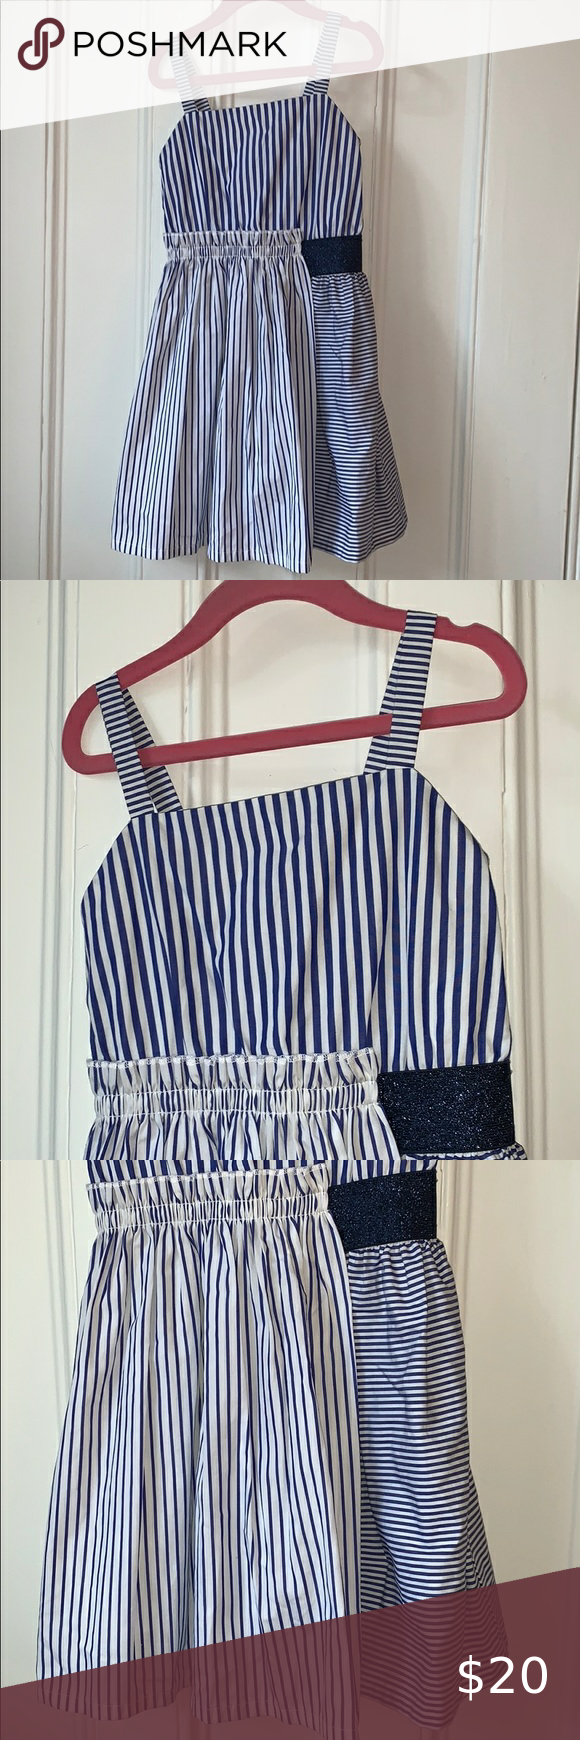 Adorable Striped Dress With Waist Ruffle Detail Striped Dress Striped Casual Dresses [ 1740 x 580 Pixel ]